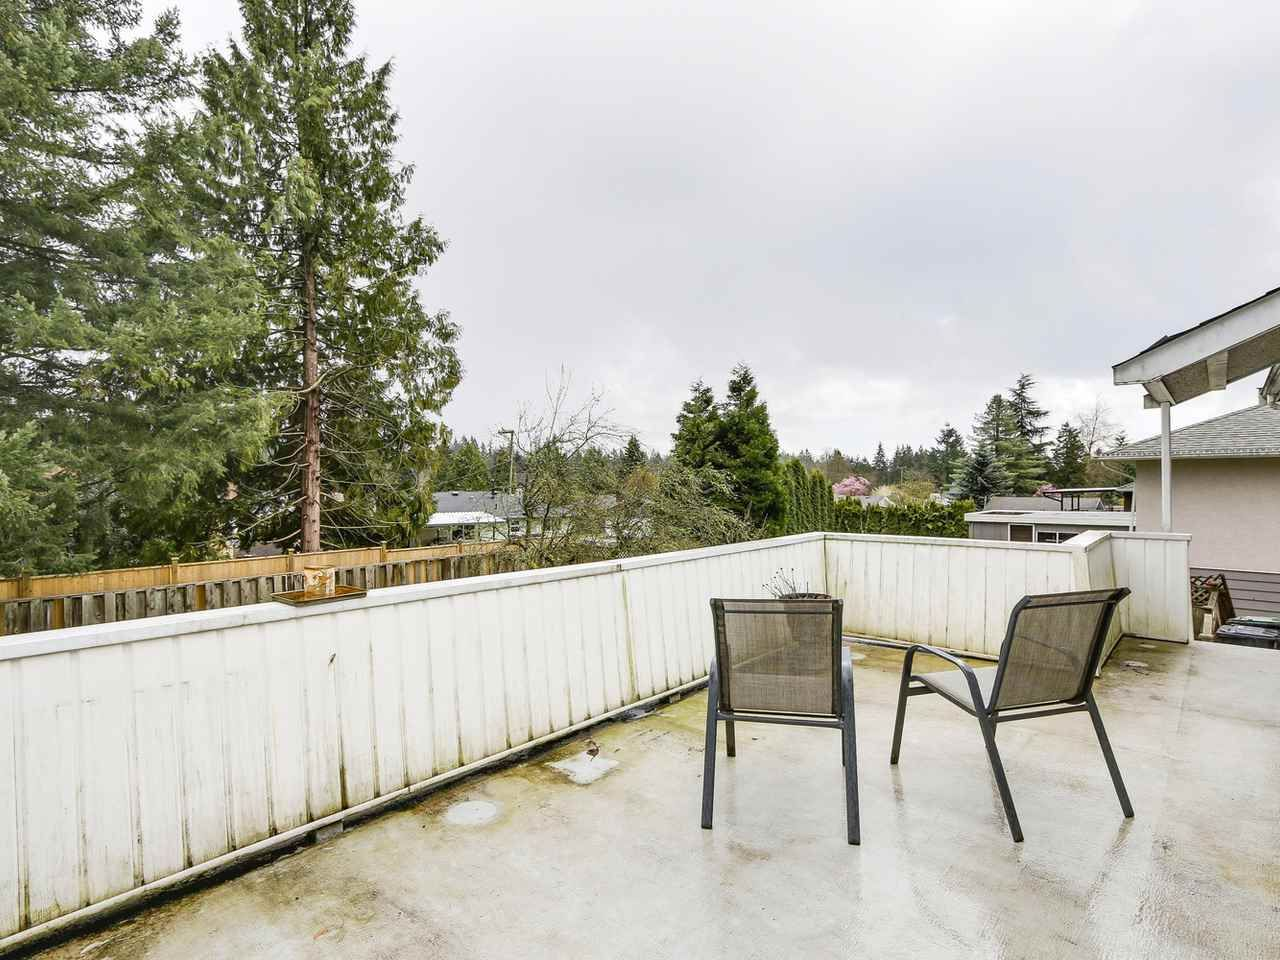 Photo 18: Photos: 731 LINTON Street in Coquitlam: Central Coquitlam House for sale : MLS®# R2157896